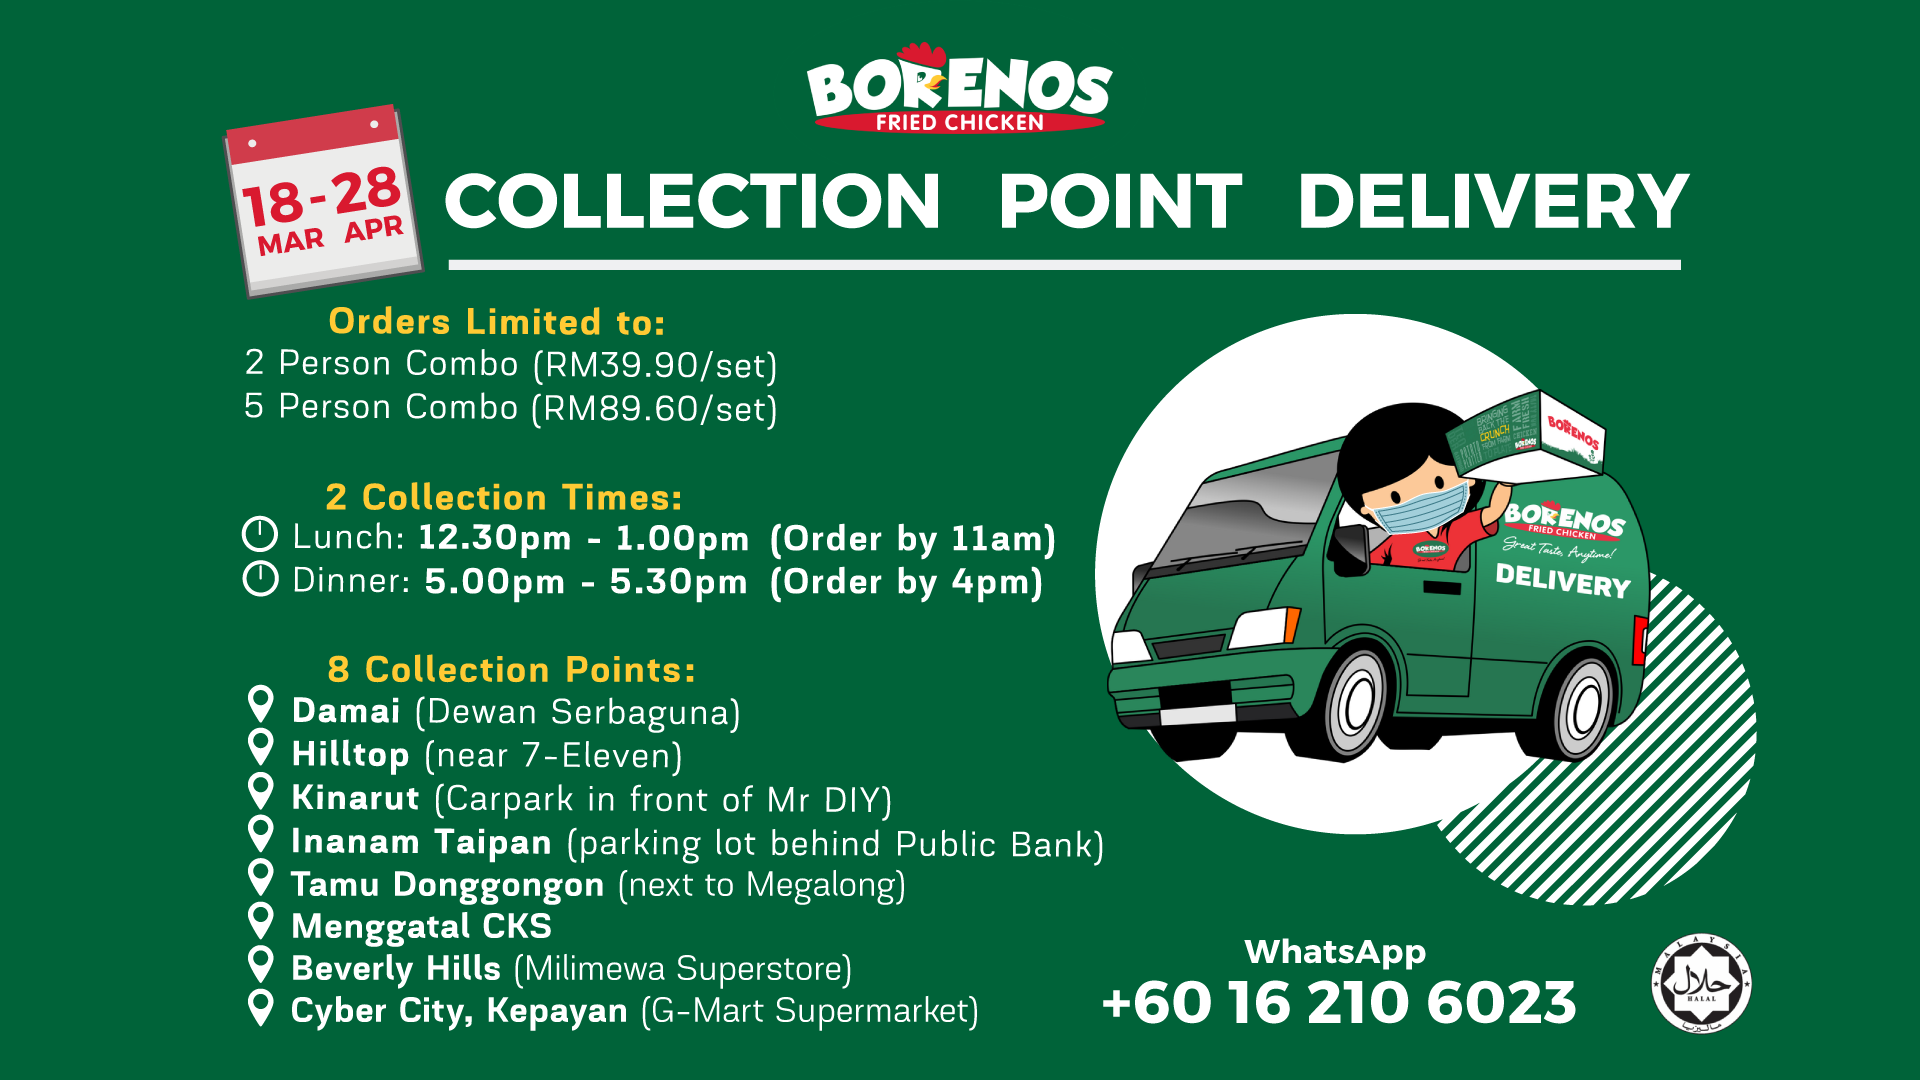 Collection Point Delivery to Sabah Districts during MCO - Borenos Fried Chicken